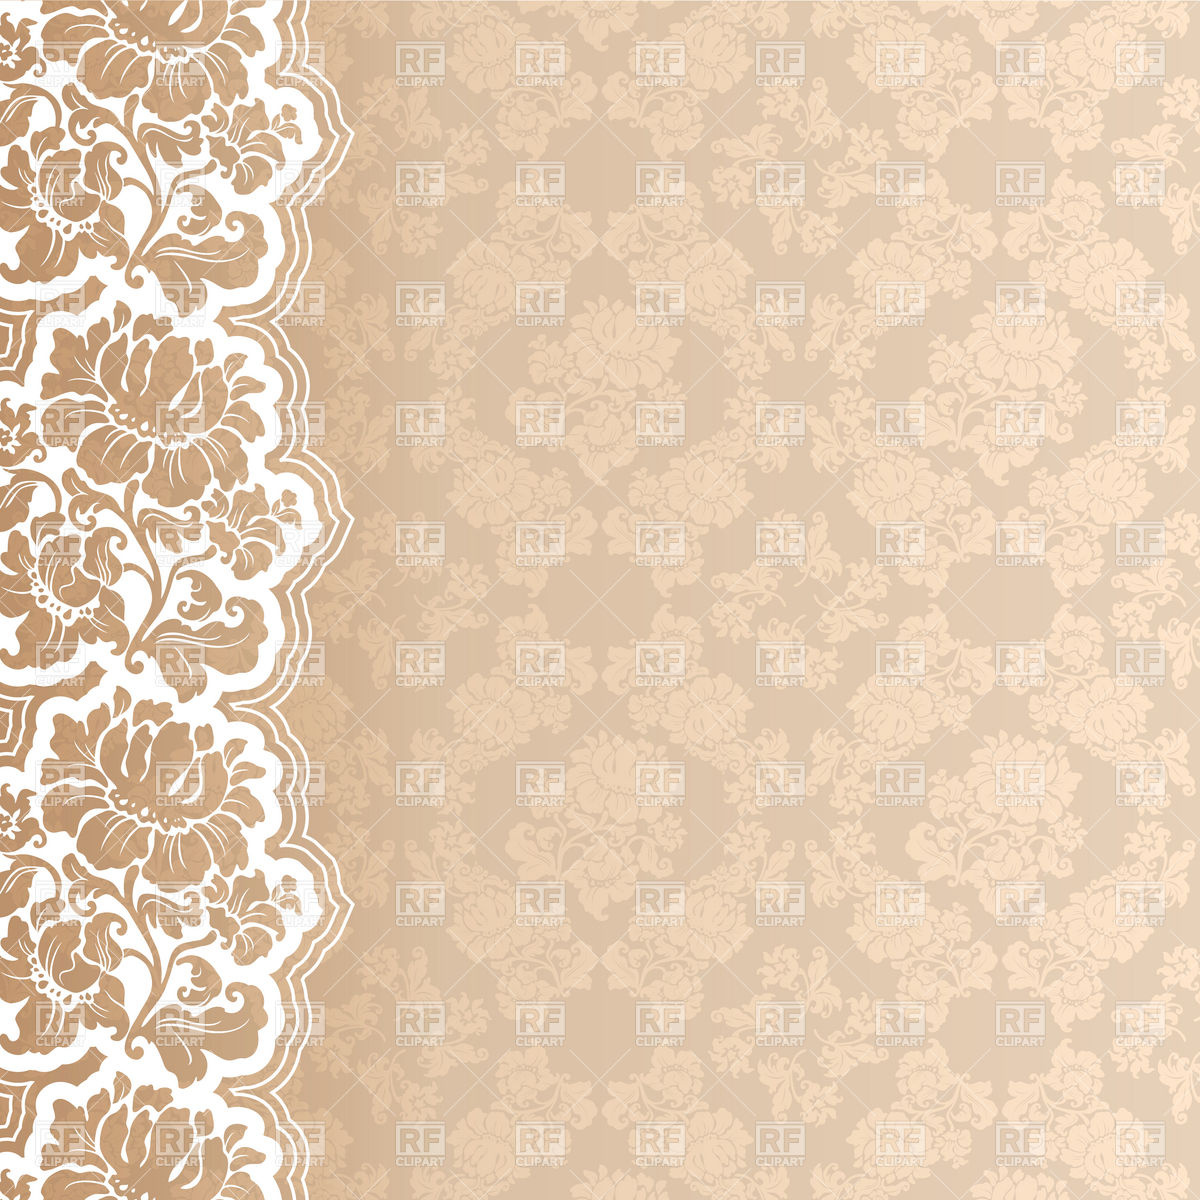 Lace Wallpaper - WallpaperSafari